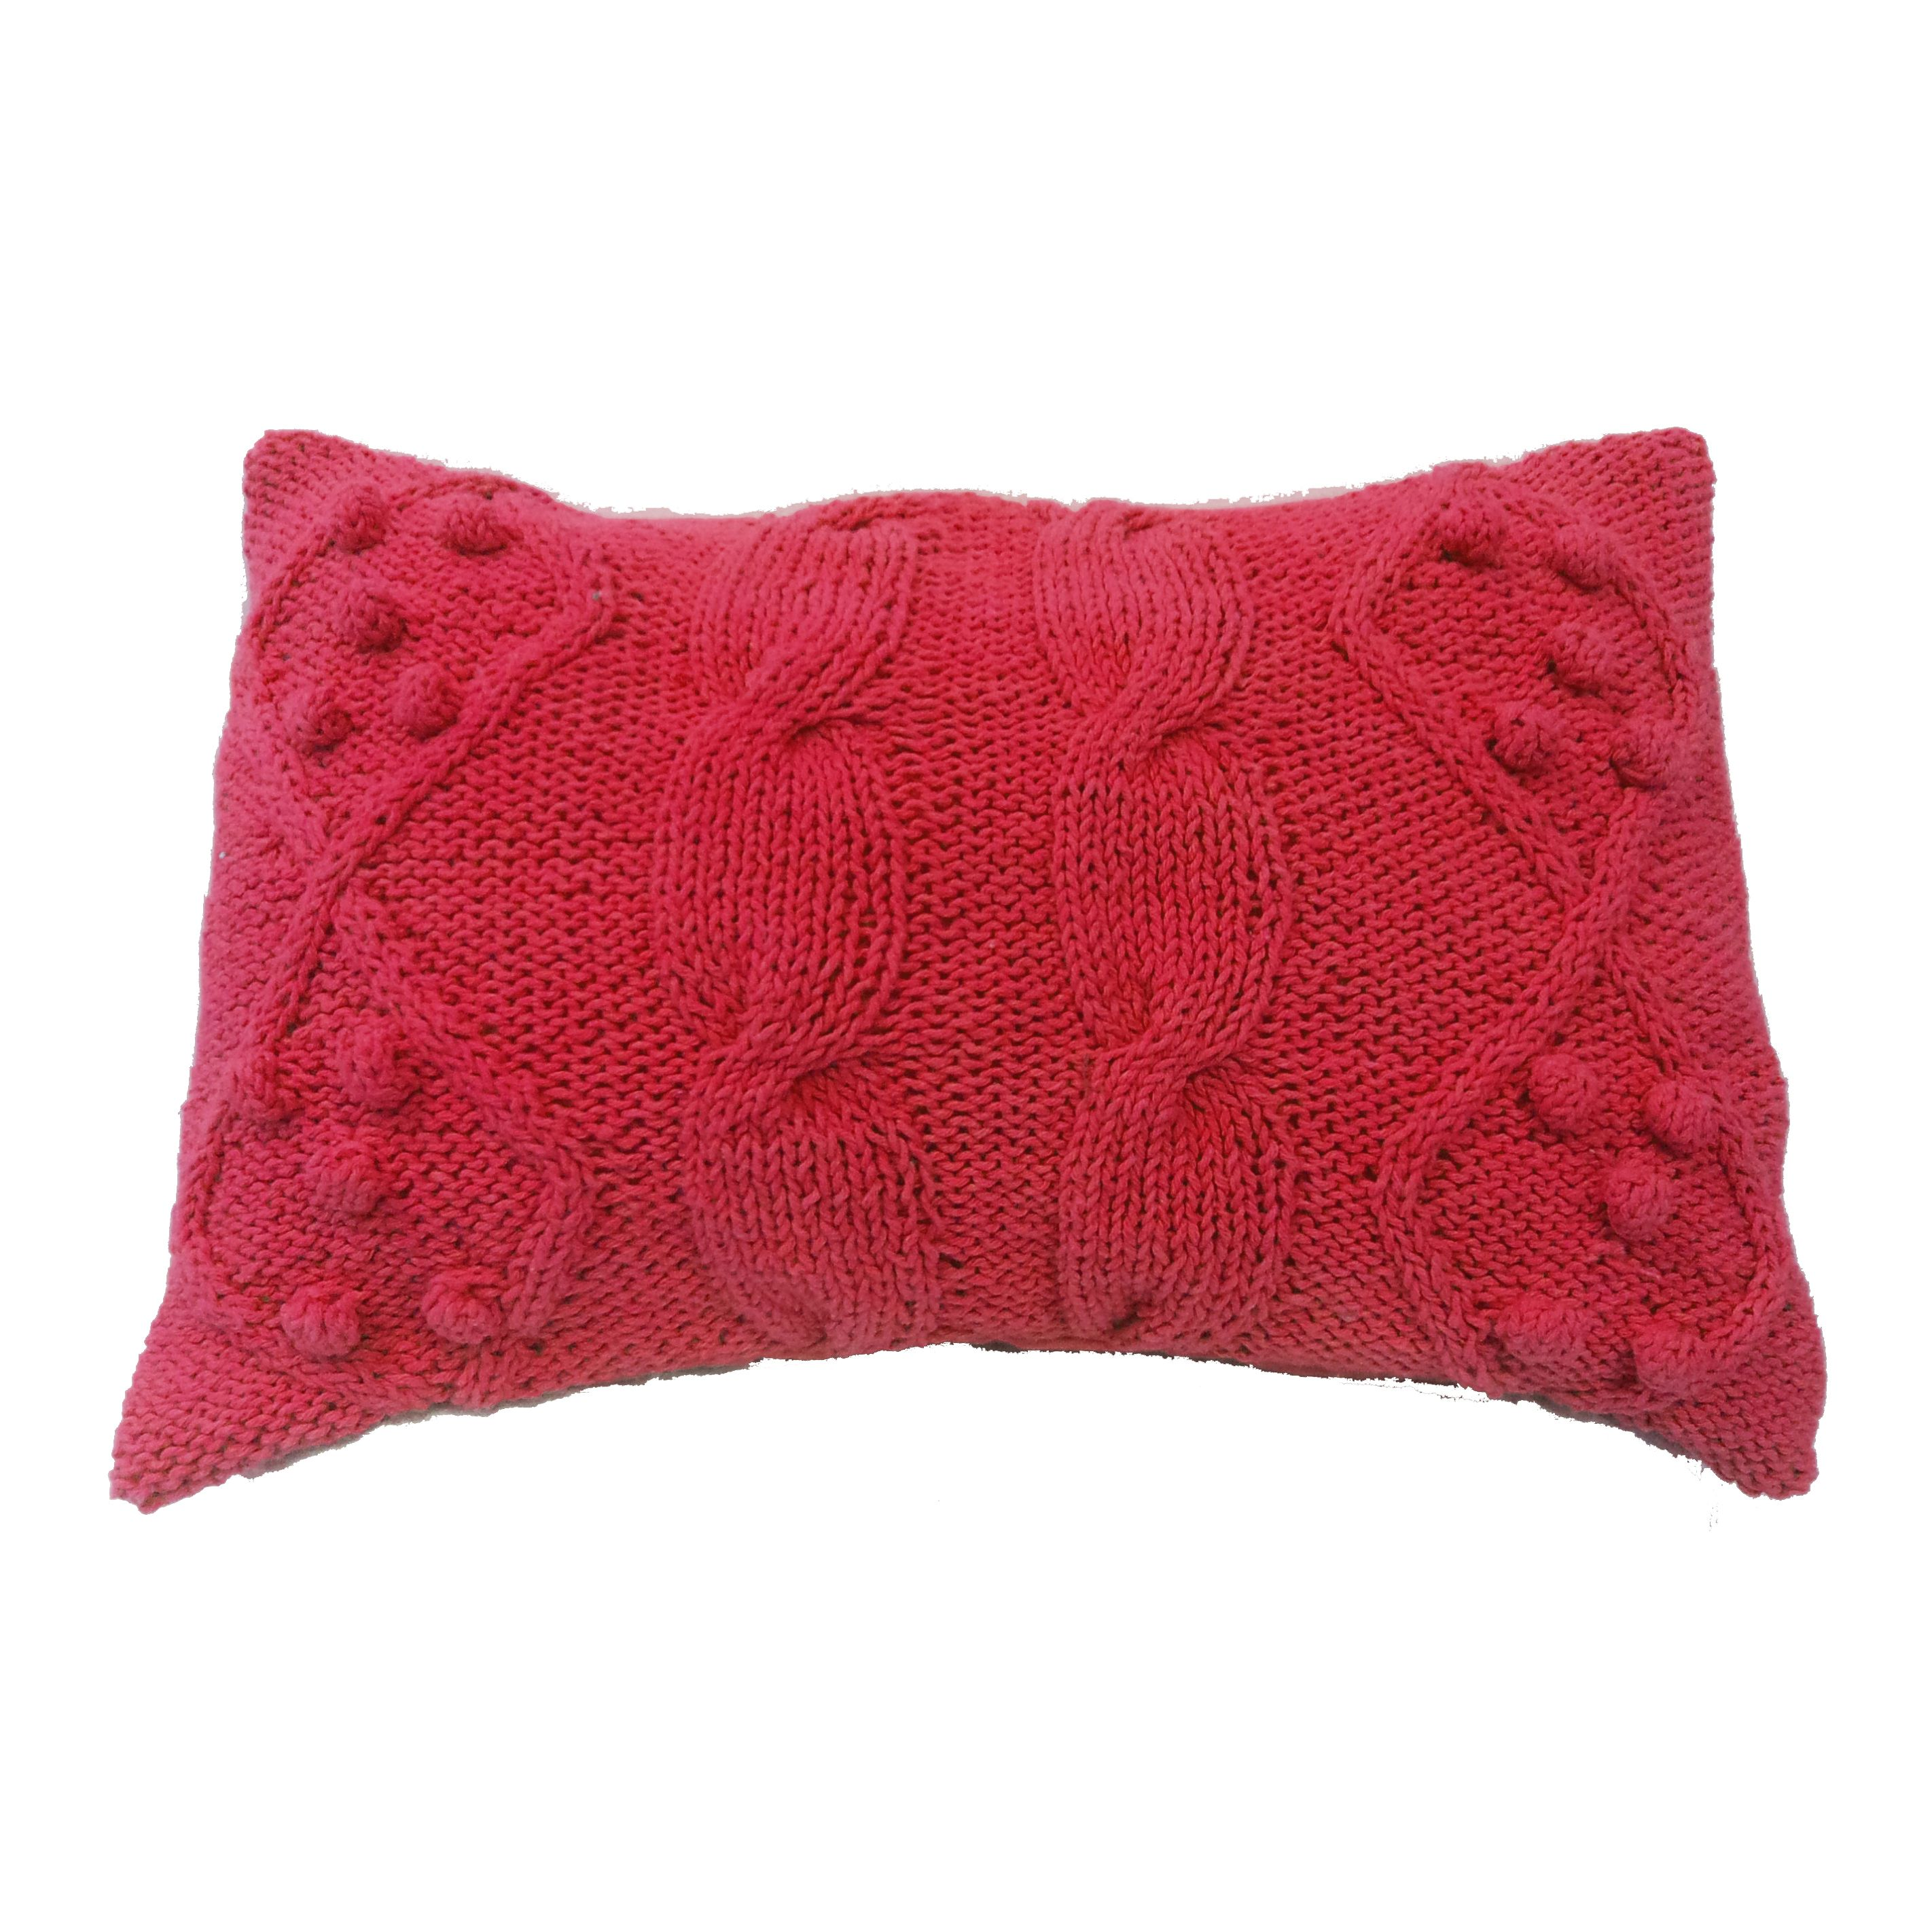 14x20 Twisted Cable Knit Pillow